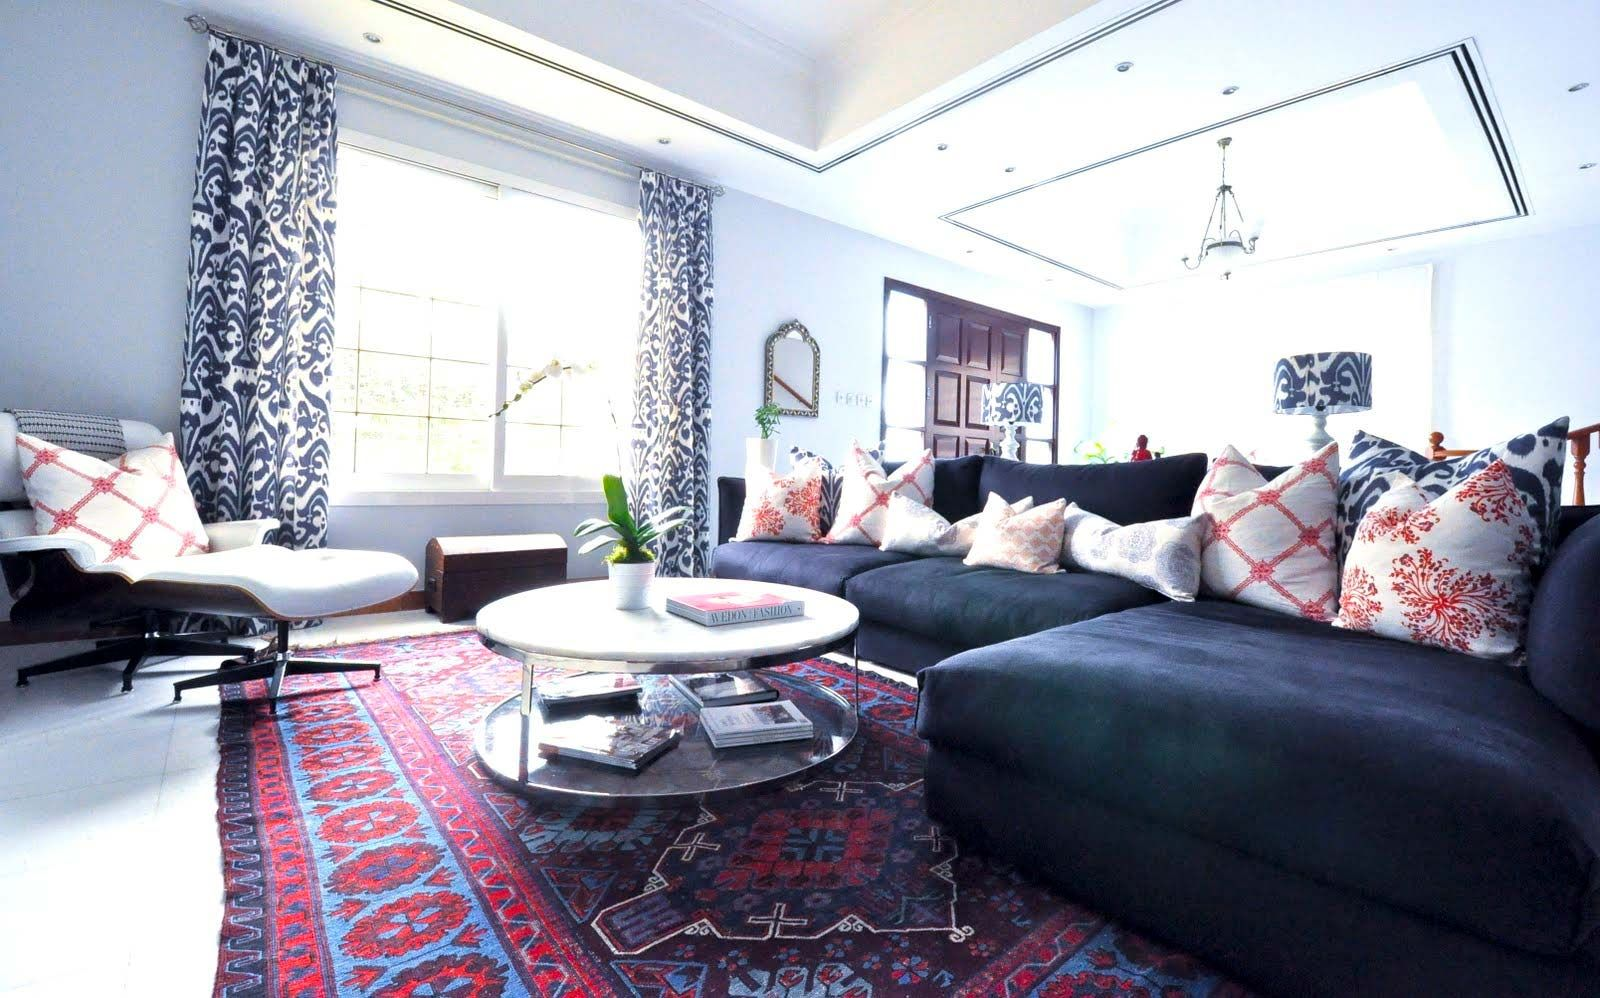 Persian carpets create a classic modern style living room